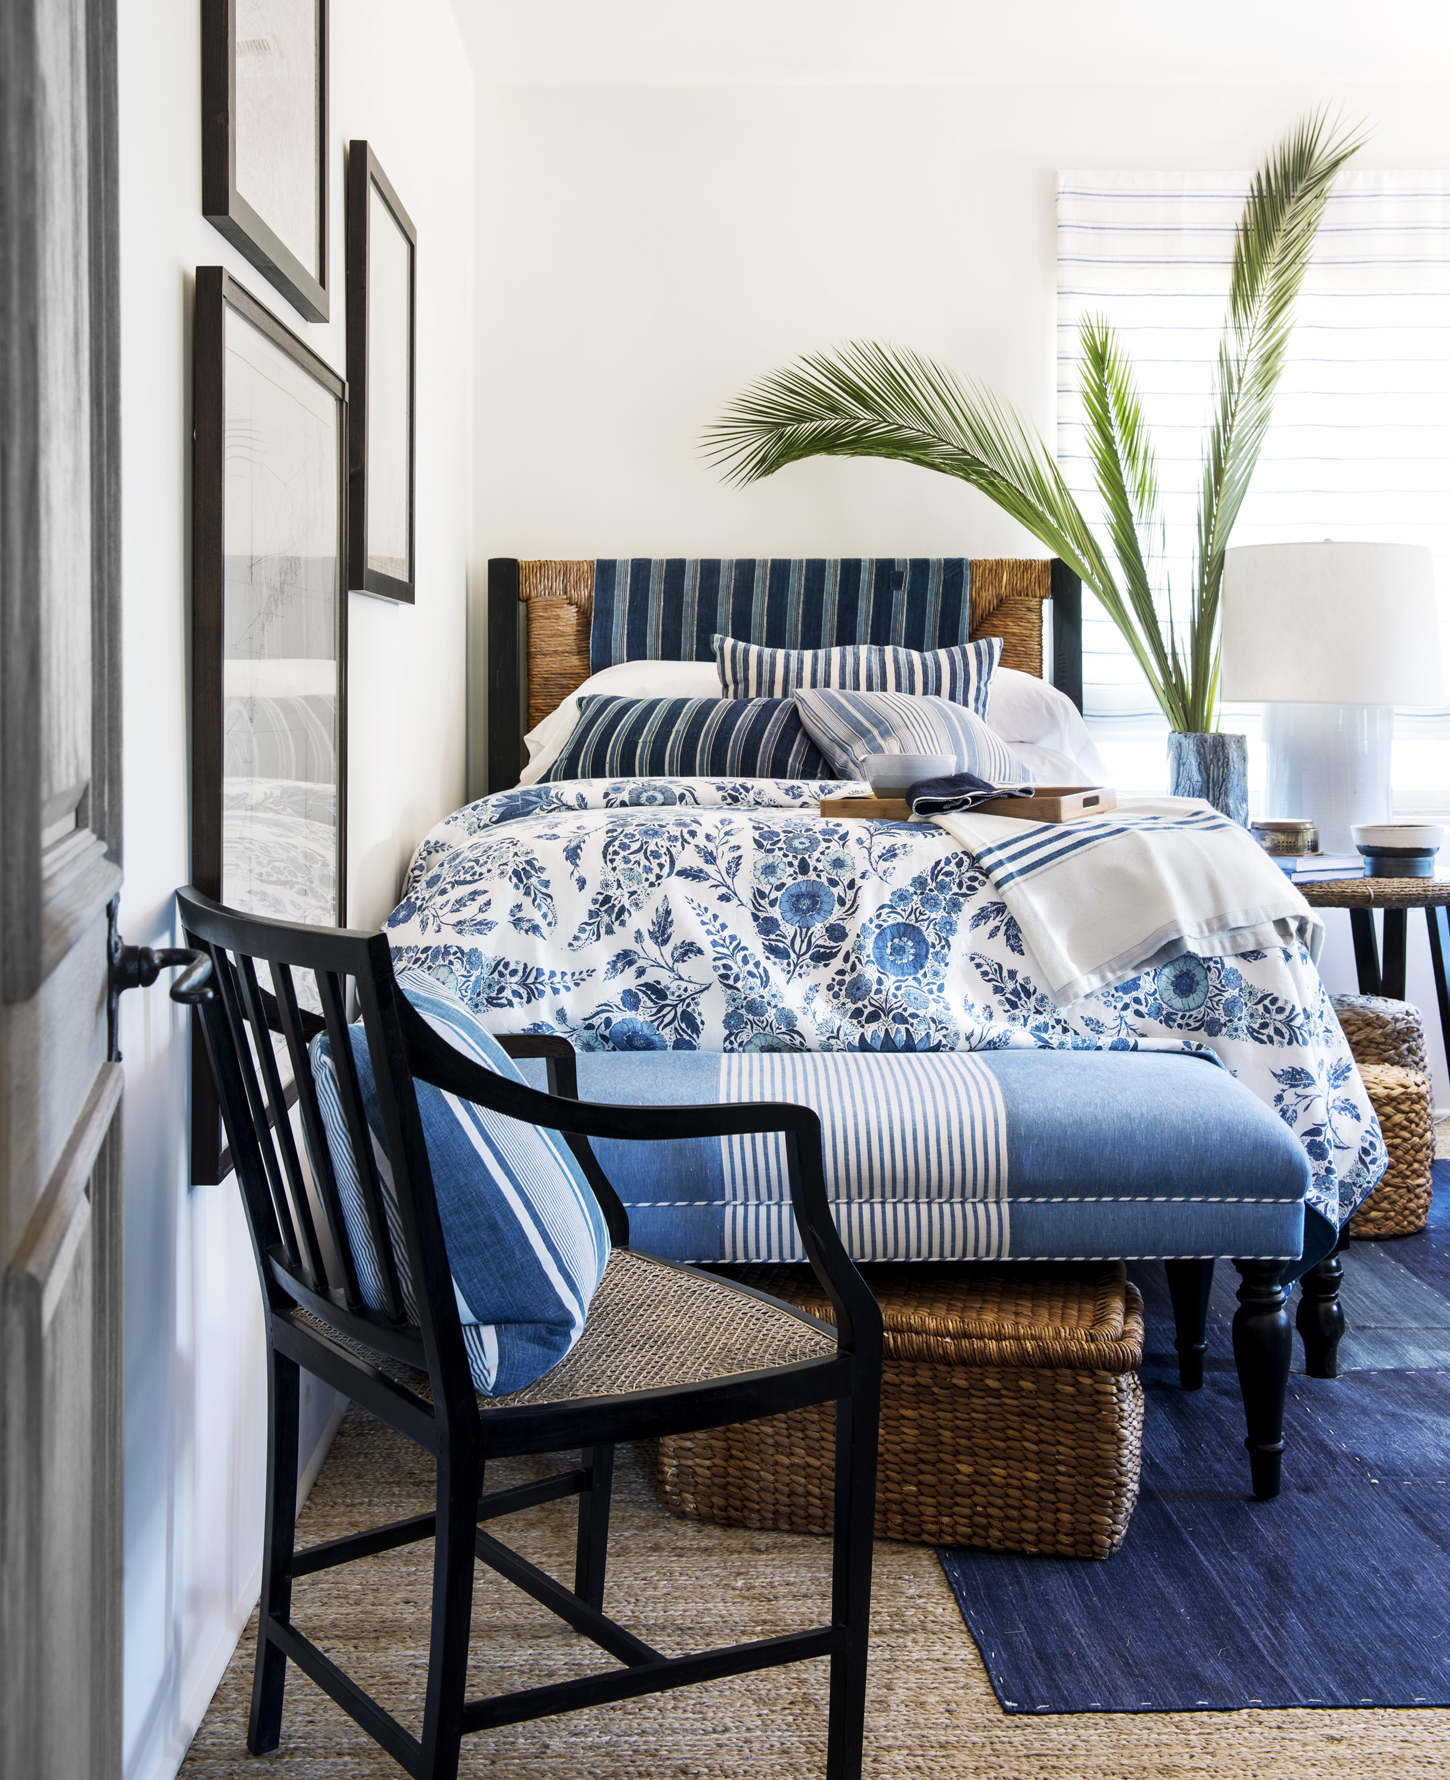 Blue And White Bedroom Design Blue And White Rooms  Decorating With Blue And White